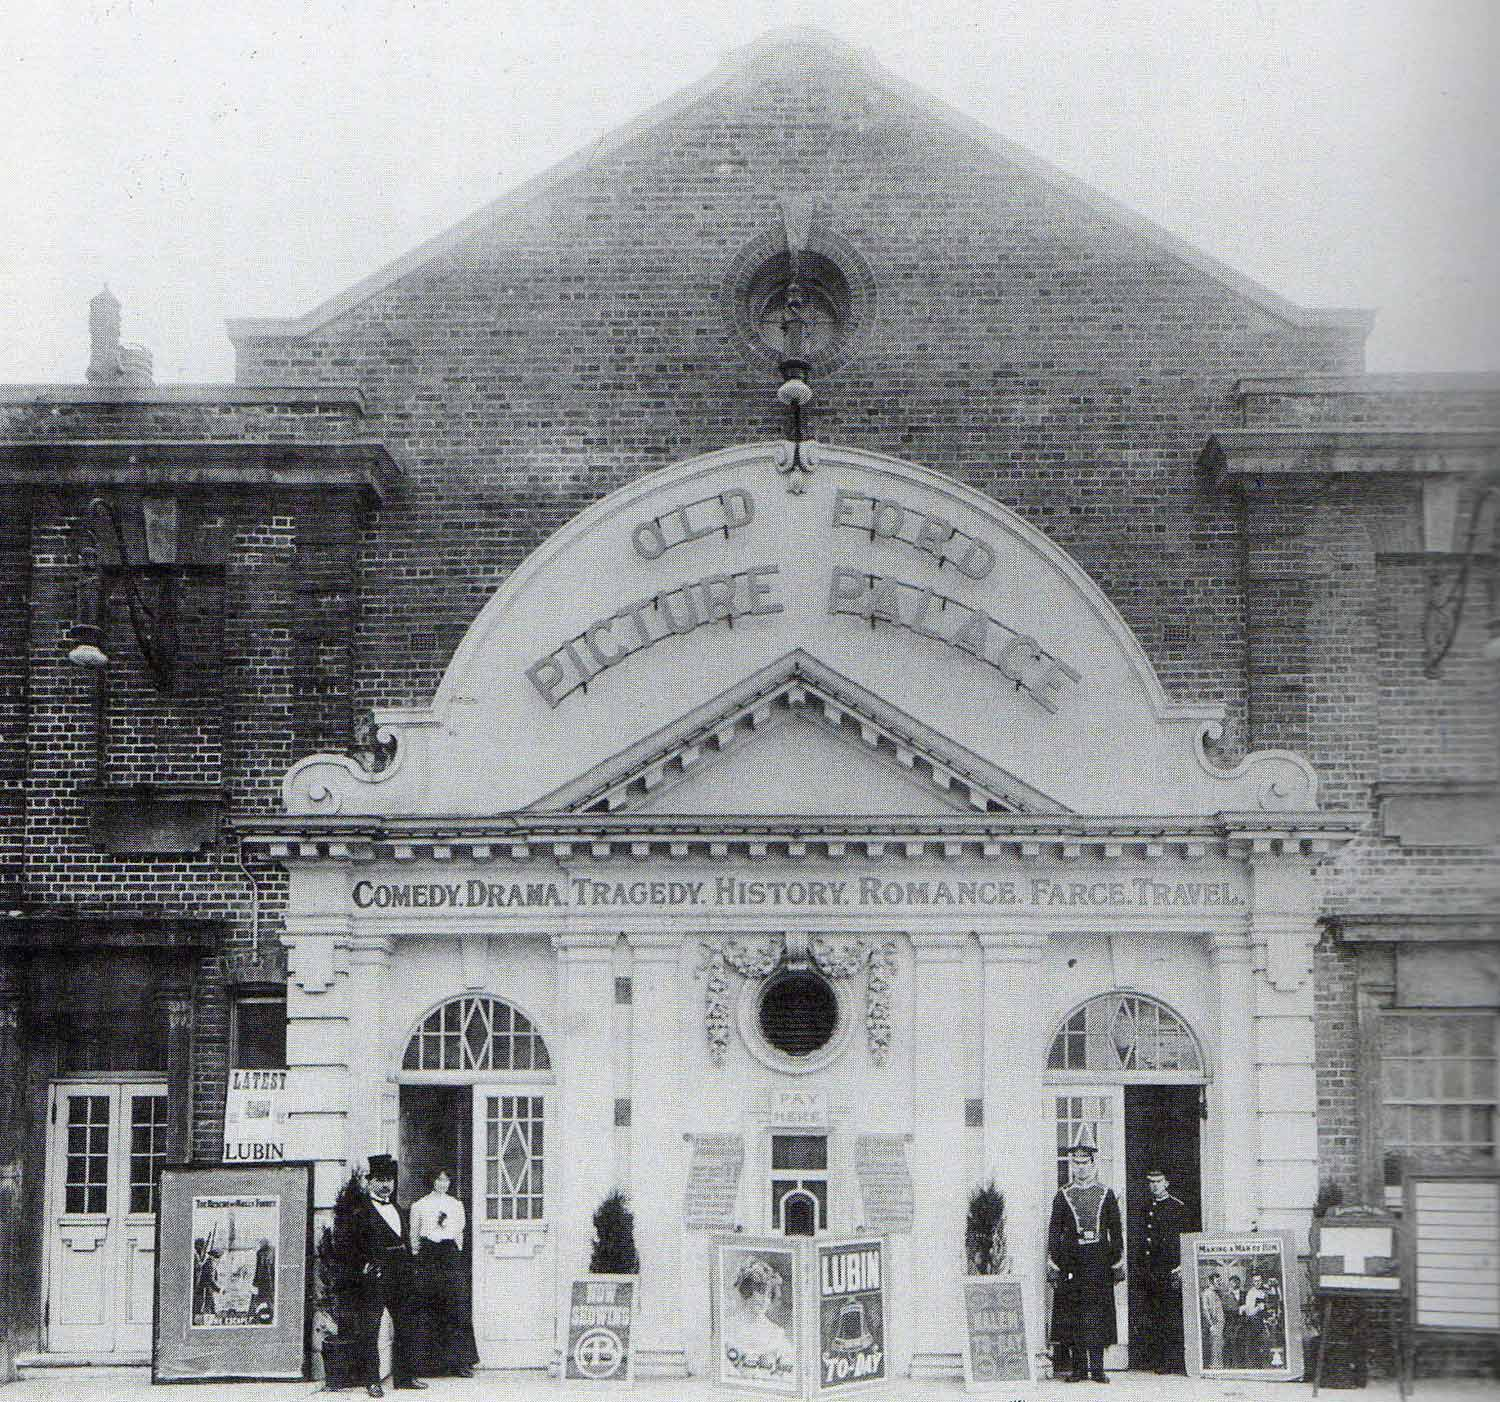 Black and white photograph of the Ritz Cinema in 1897